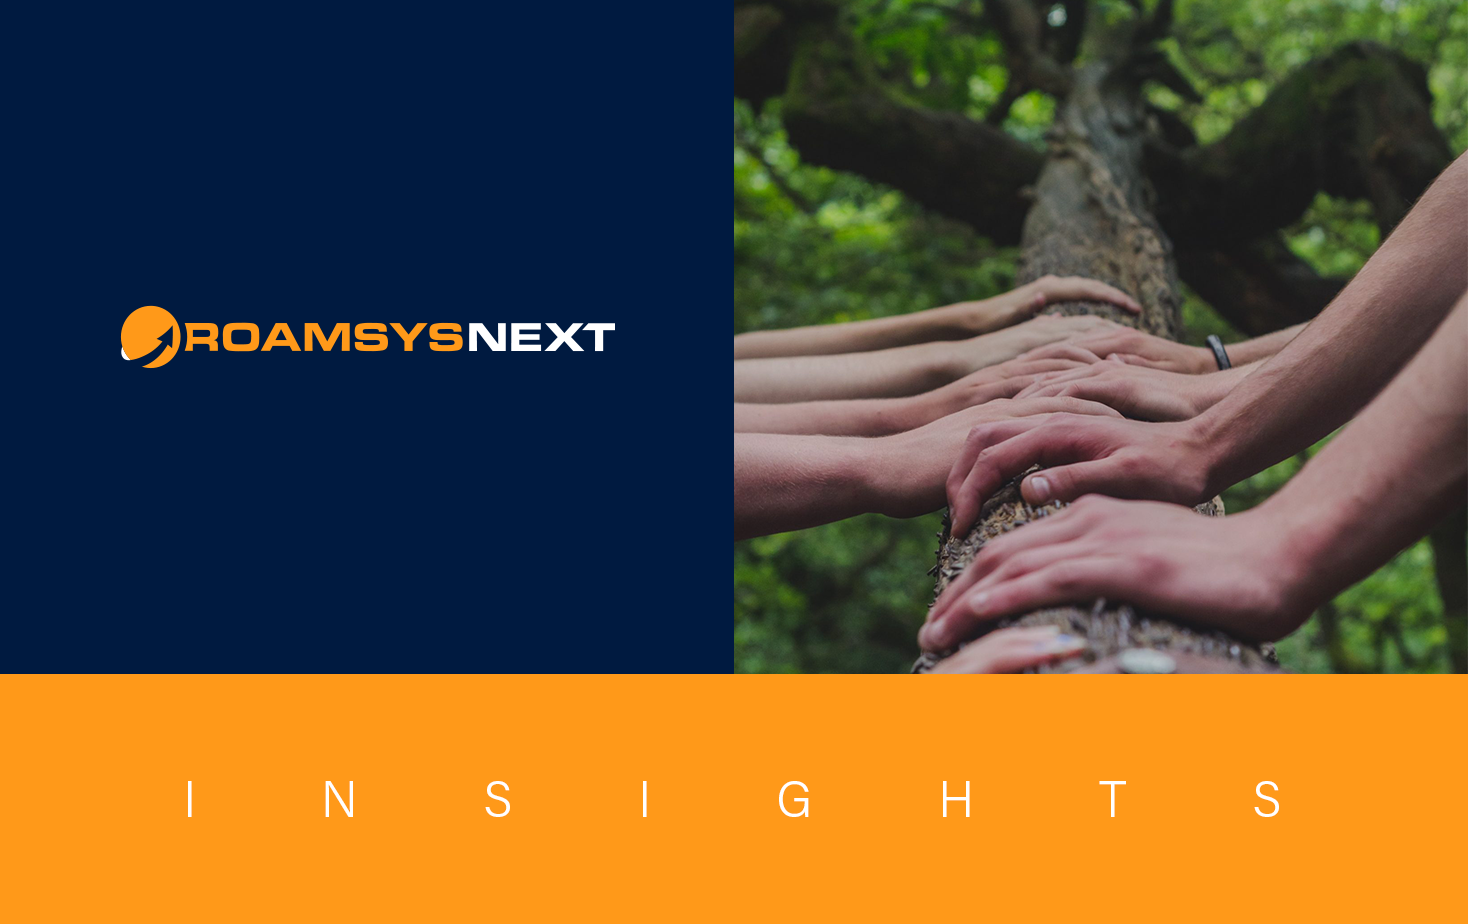 RoamsysNext Insights 16